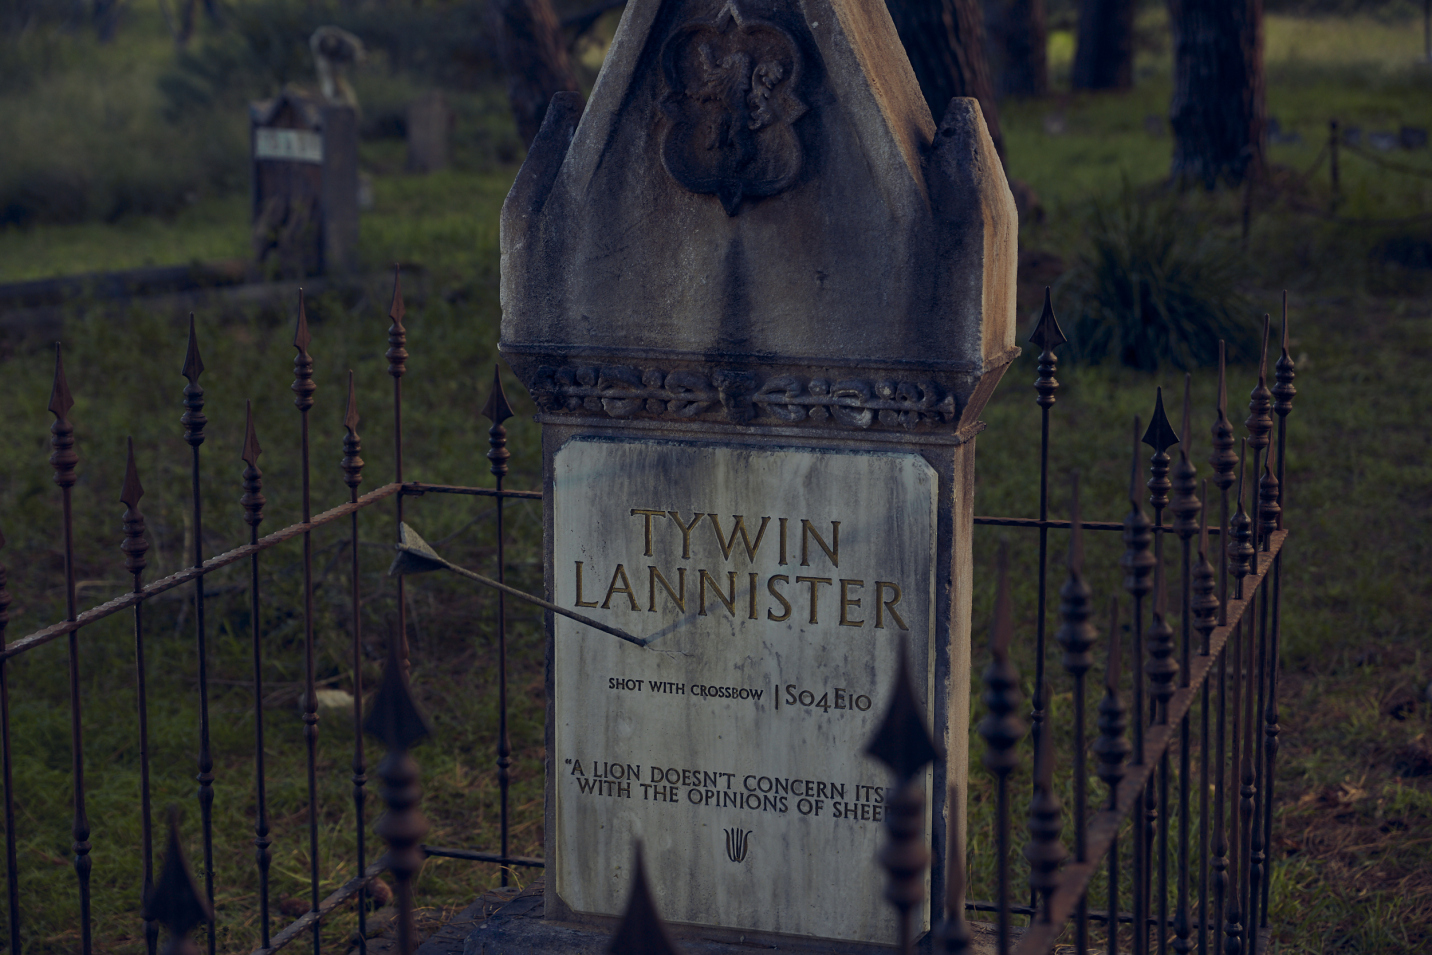 Cementerio dedicado a los muertos de Games of Thrones